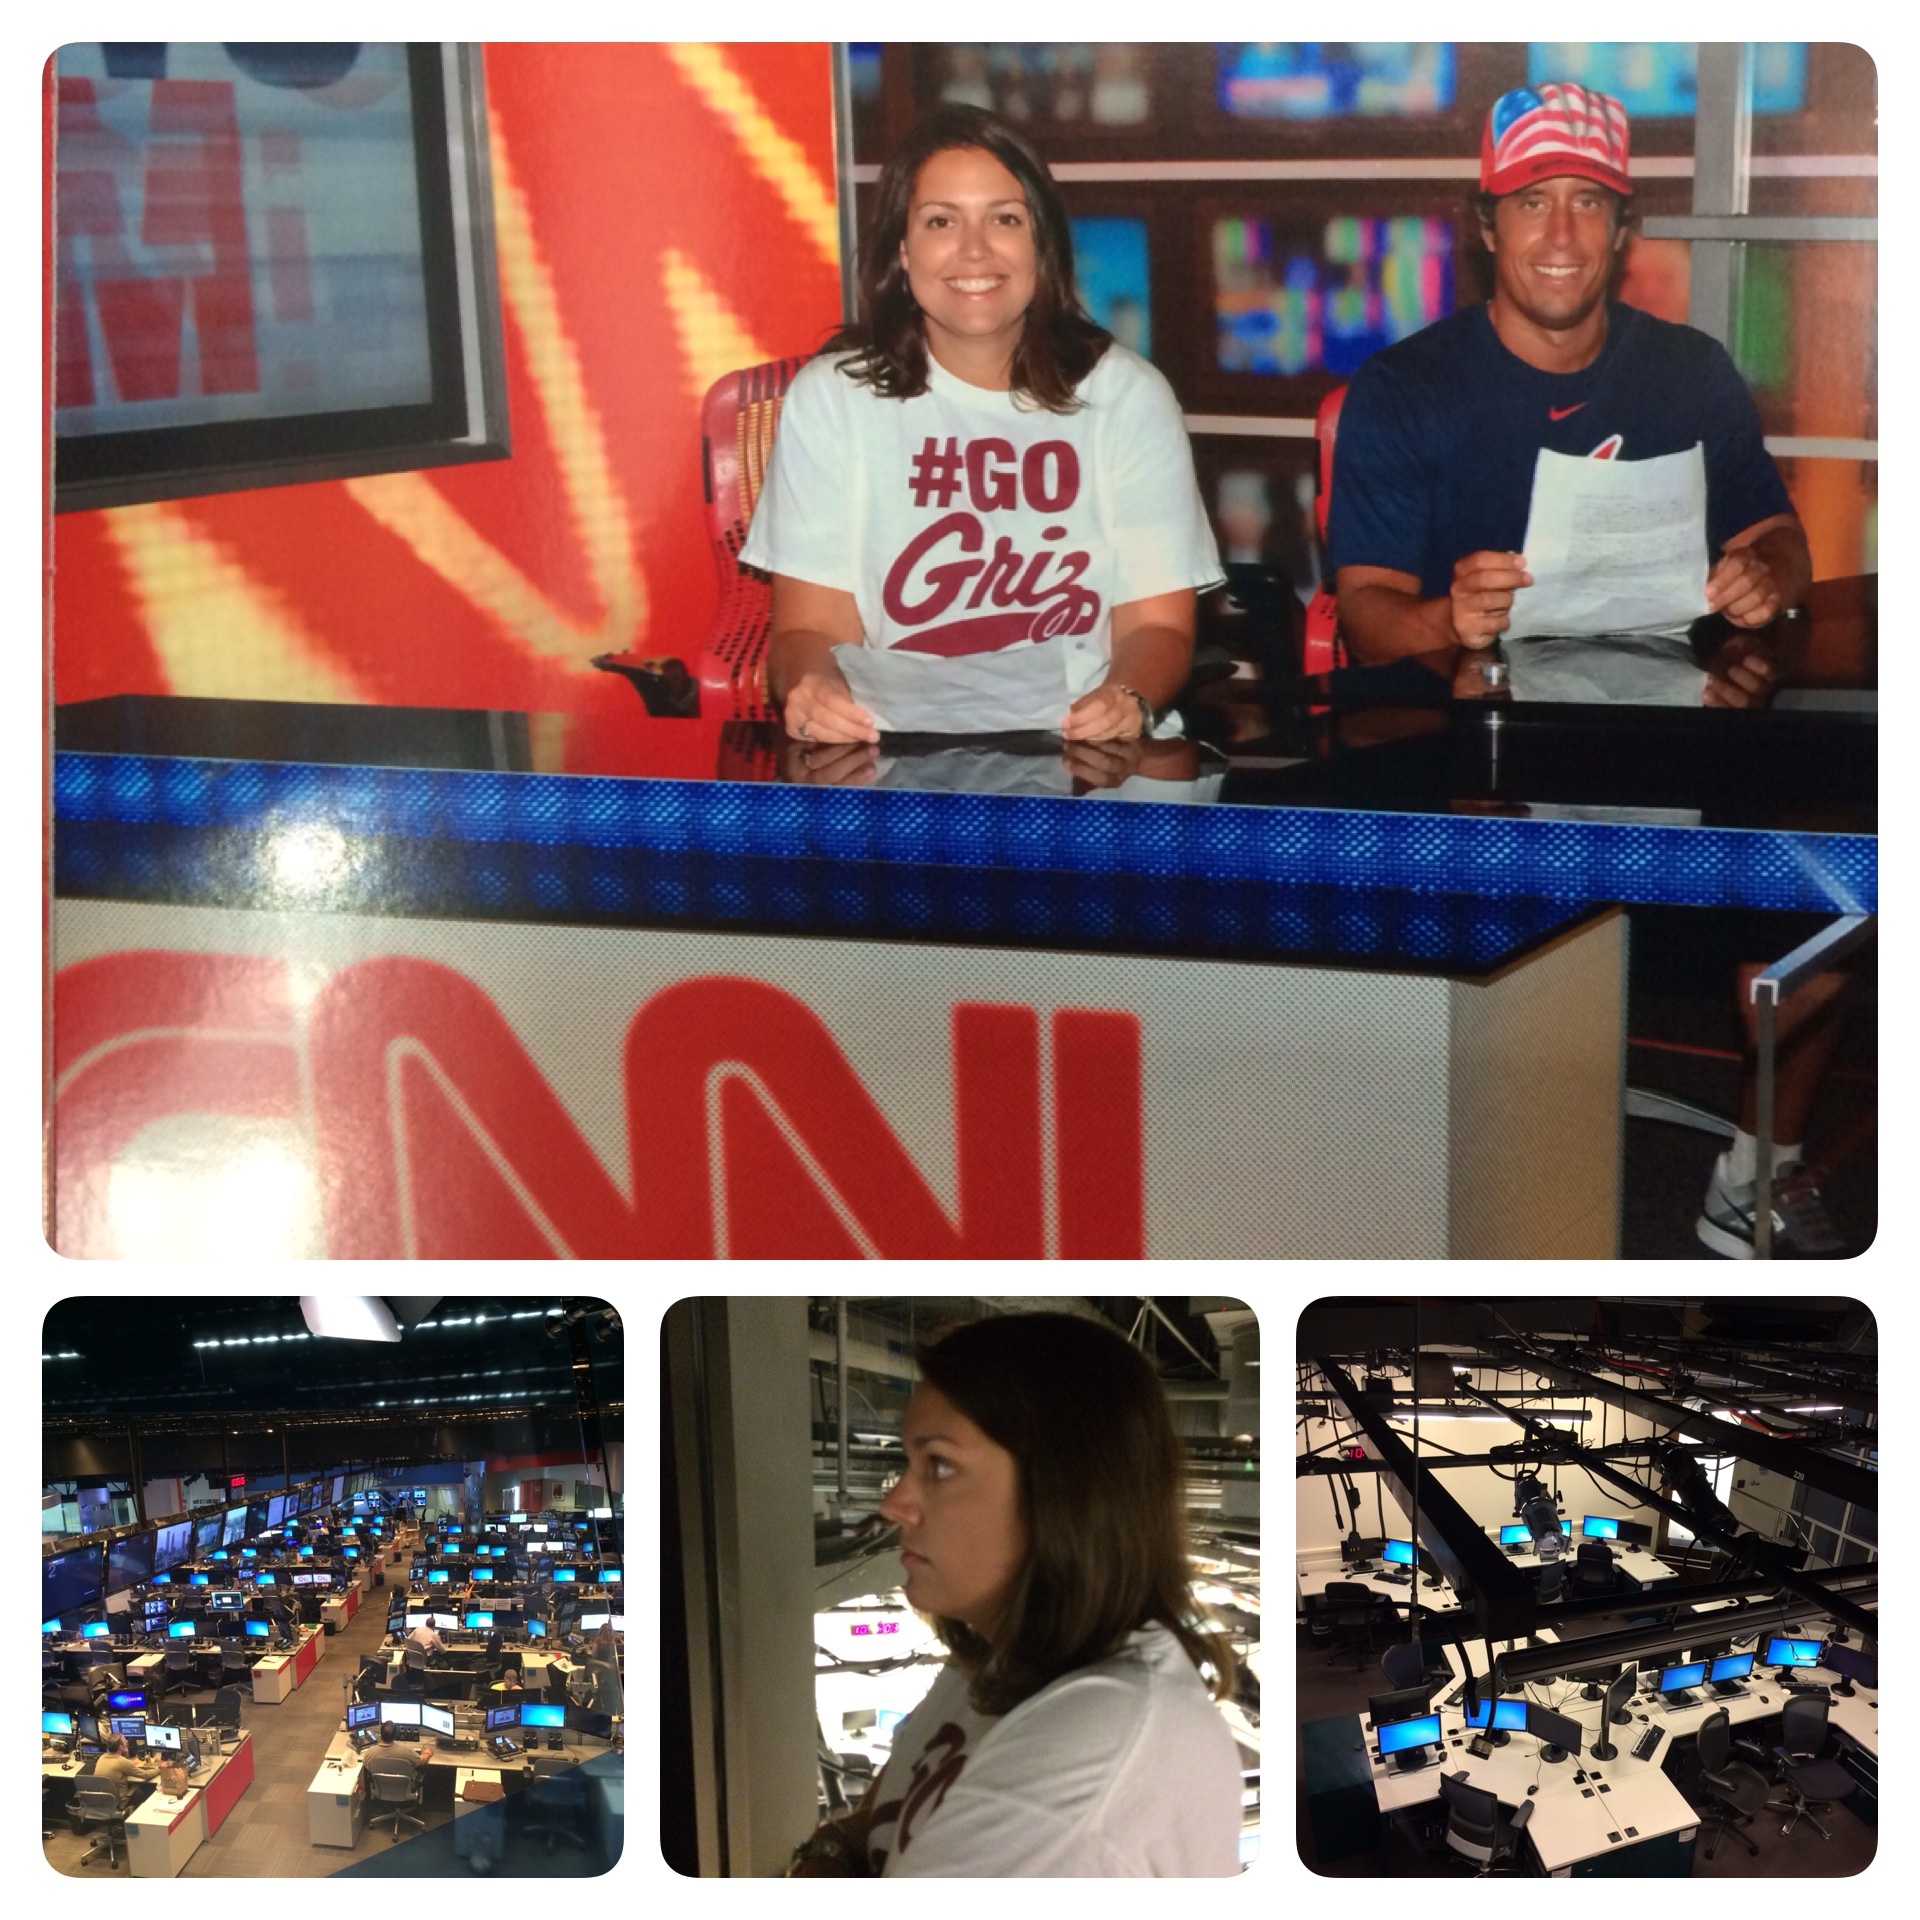 The CNN tour was very interesting.